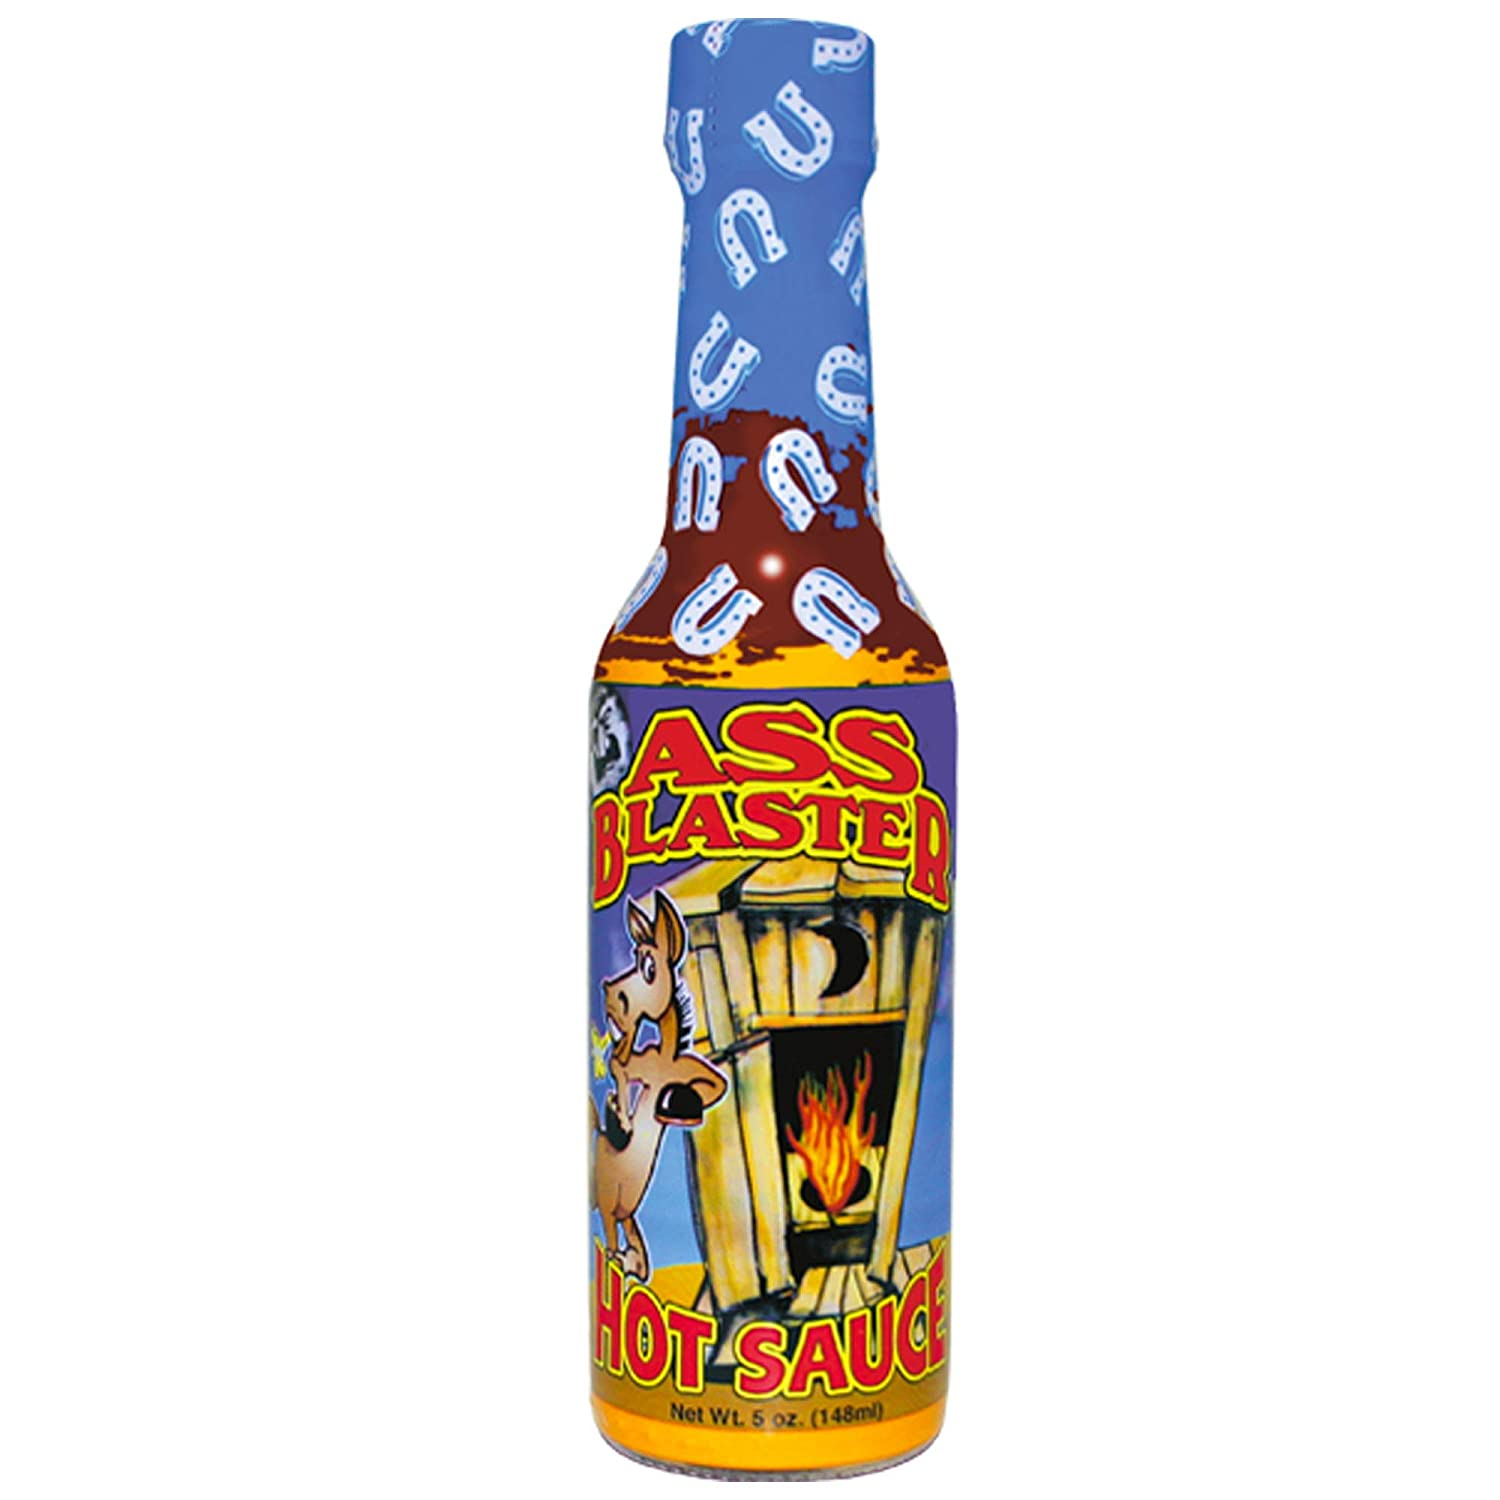 ASS BLASTER Premium Gourmet Hot Sauce Bottle - Ultimate Habanero Hot Sauce Gift - Spicy Food Lovers Try if you dare!